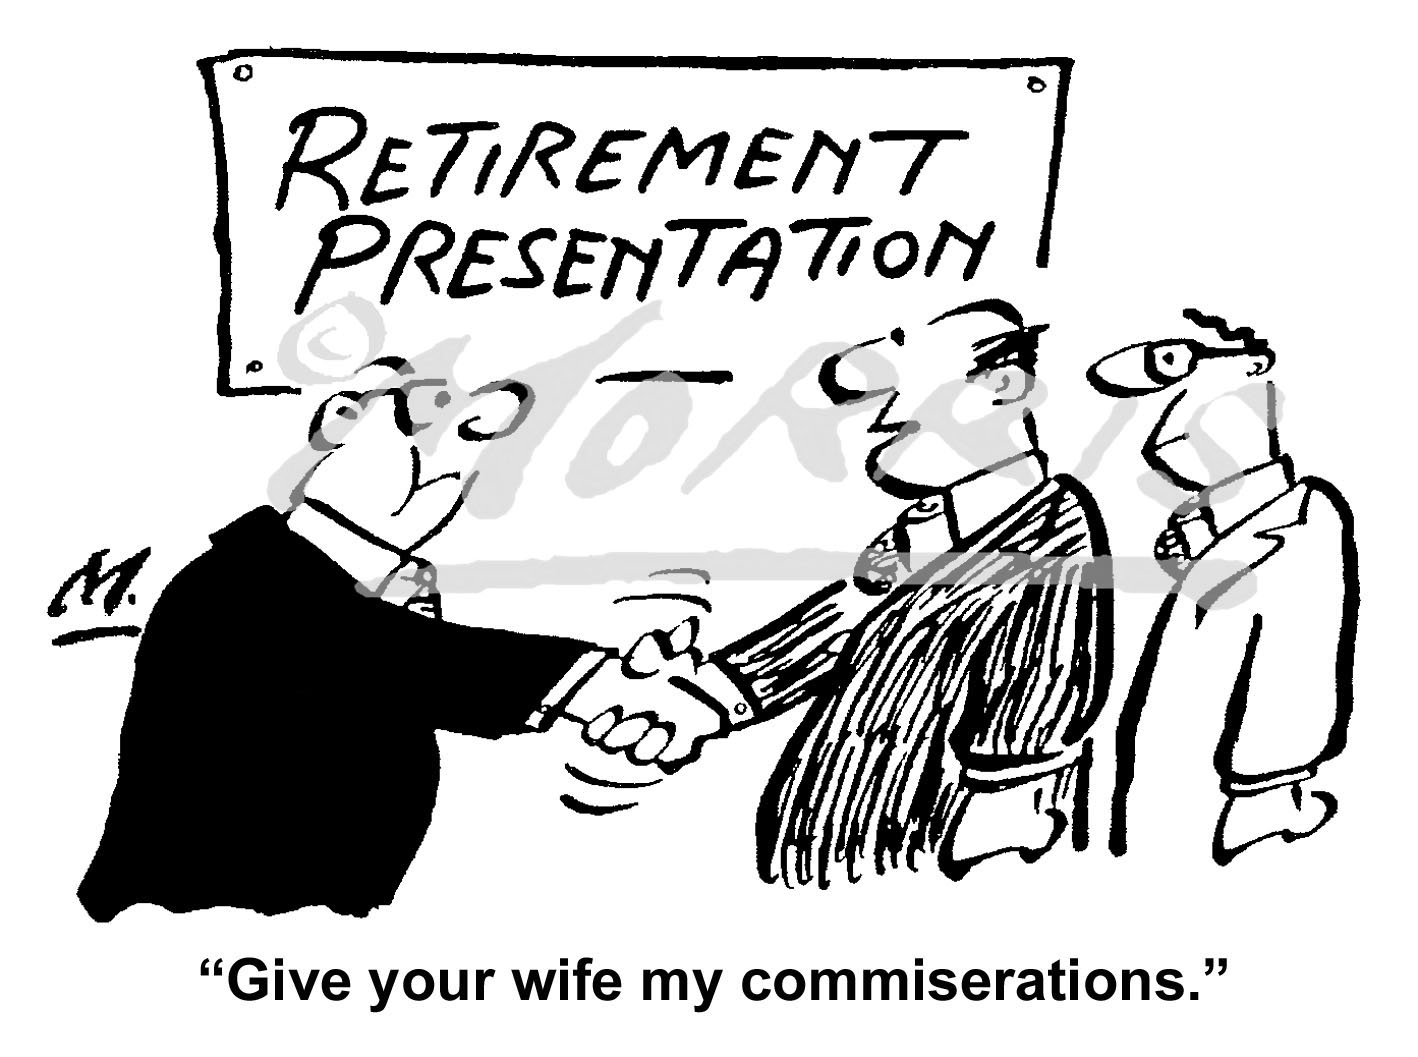 Retirement business cartoon – Ref: 6159bw